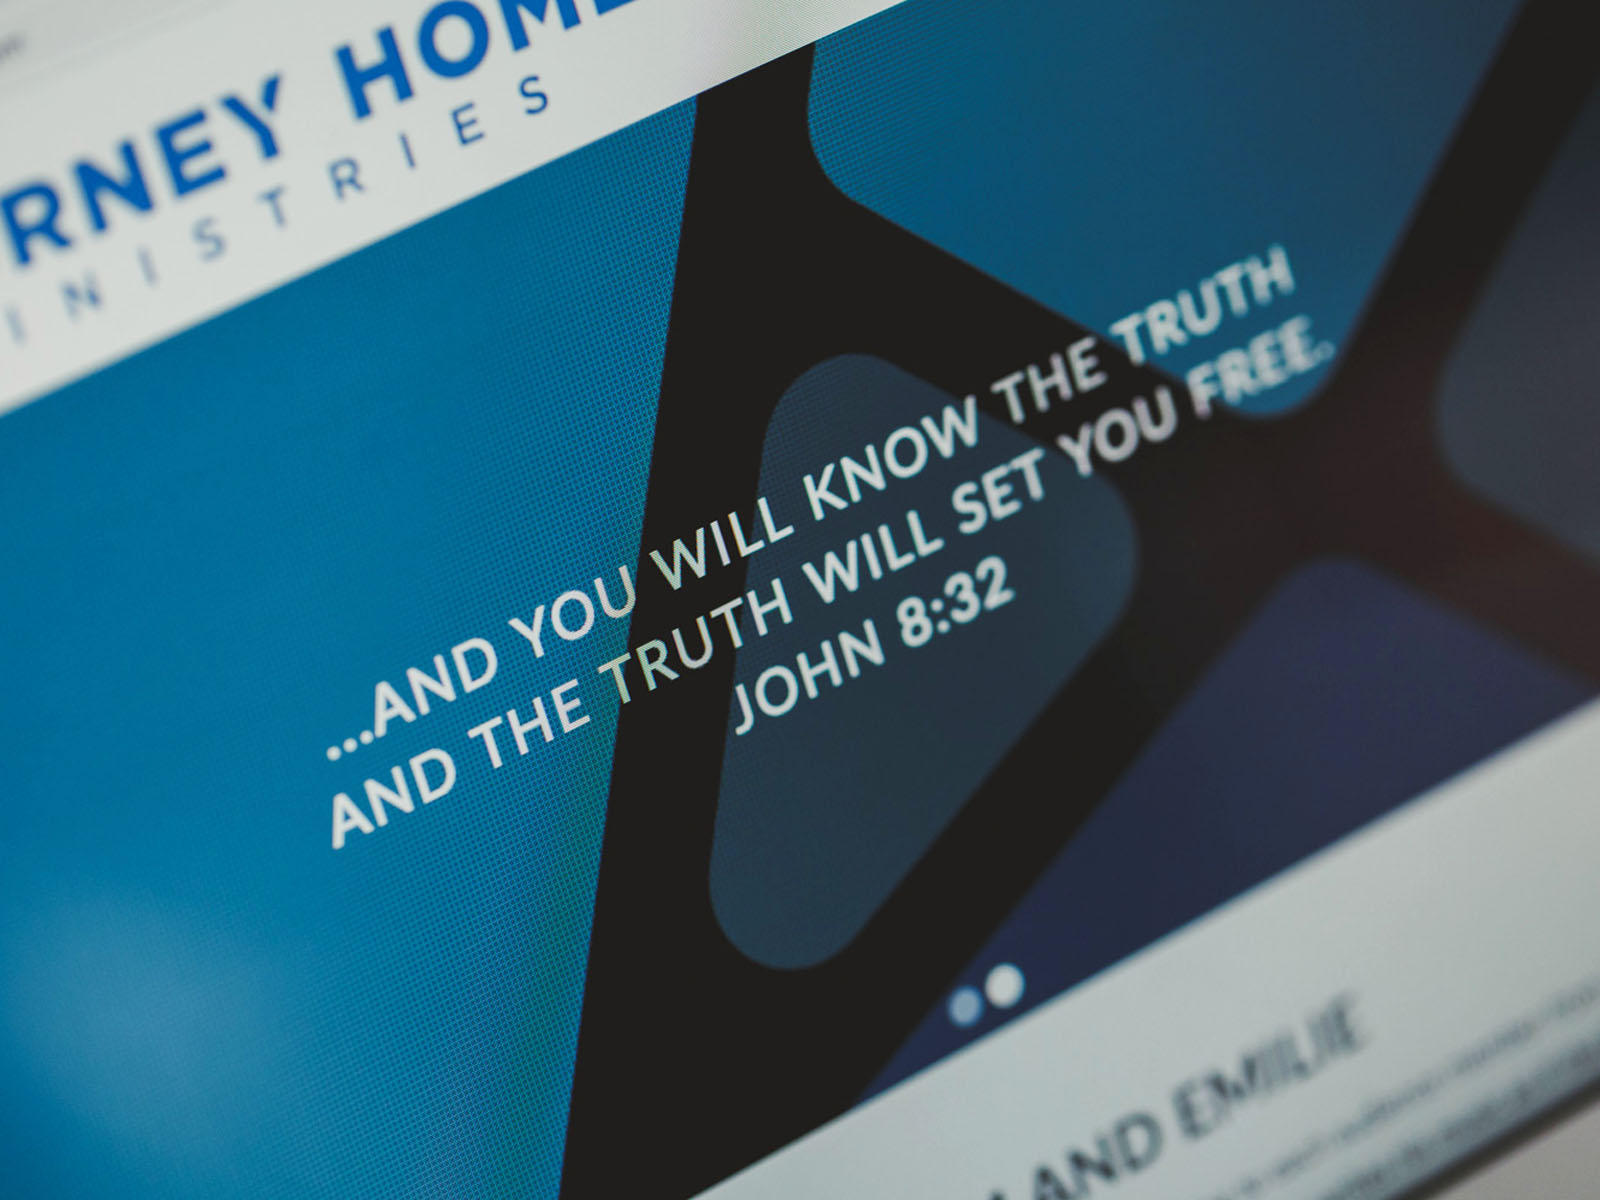 Journey Home Ministries